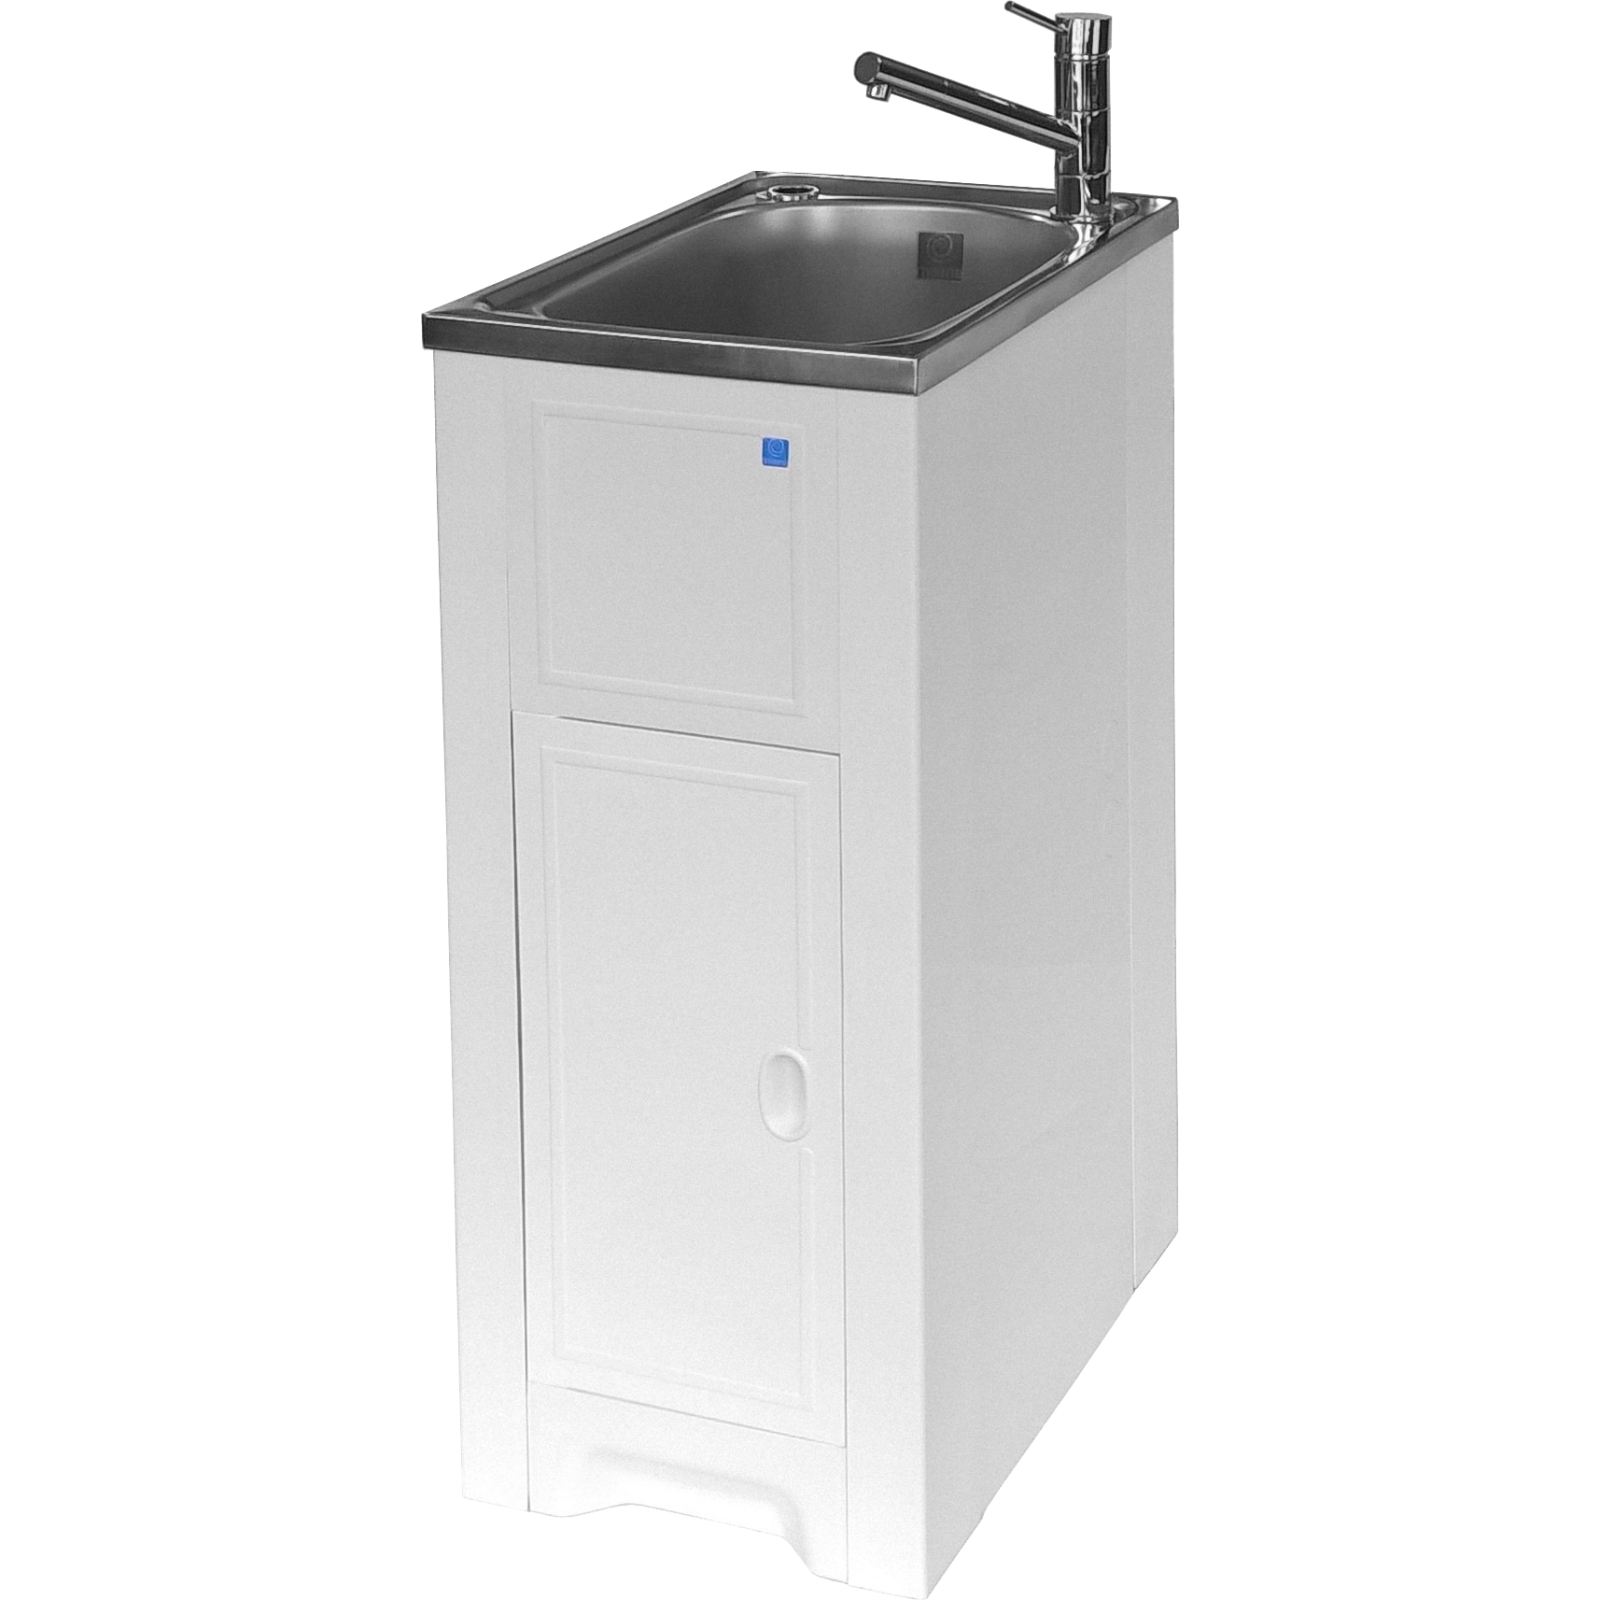 Milena 35L Stainless Steel Skinny Mini Laundry Trough And Poly Cabinet LH Door